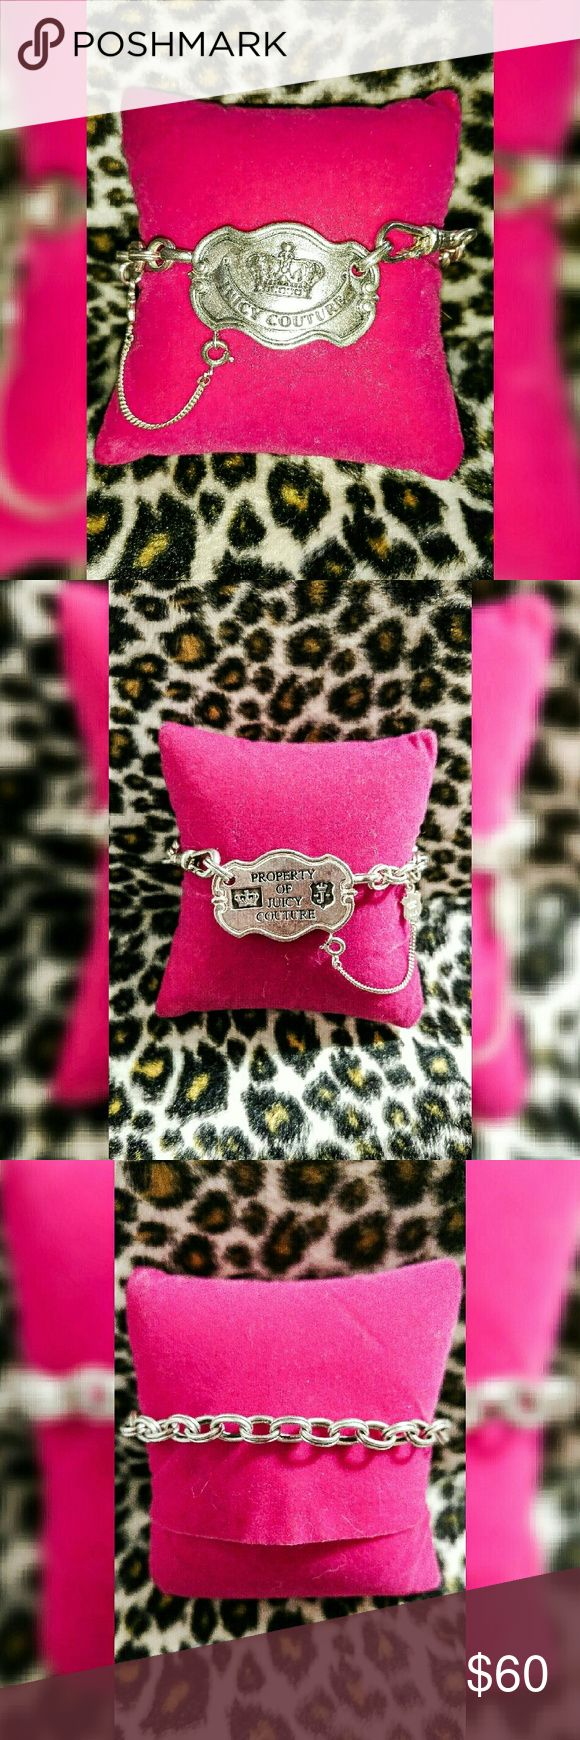 "925 Sterling Silver JC Bracelet 925 Silver Juicy Couture Bracelet  Front Side Of ID Plate Says   ""Juicy Couture""  Back Of Plate Says   ""Property Of Juicy Couture""  Was Just Cleaned & Looks Fantastic!  Very Cute ~ Very Juicy!  Happy to Custom Bundle with Discount Incentives  Bundle With A Coach Backpack  Bundle With a Betsey Johnson Watch  Reasonable Offers Encouraged & Often Accepted Juicy Couture Jewelry Bracelets"